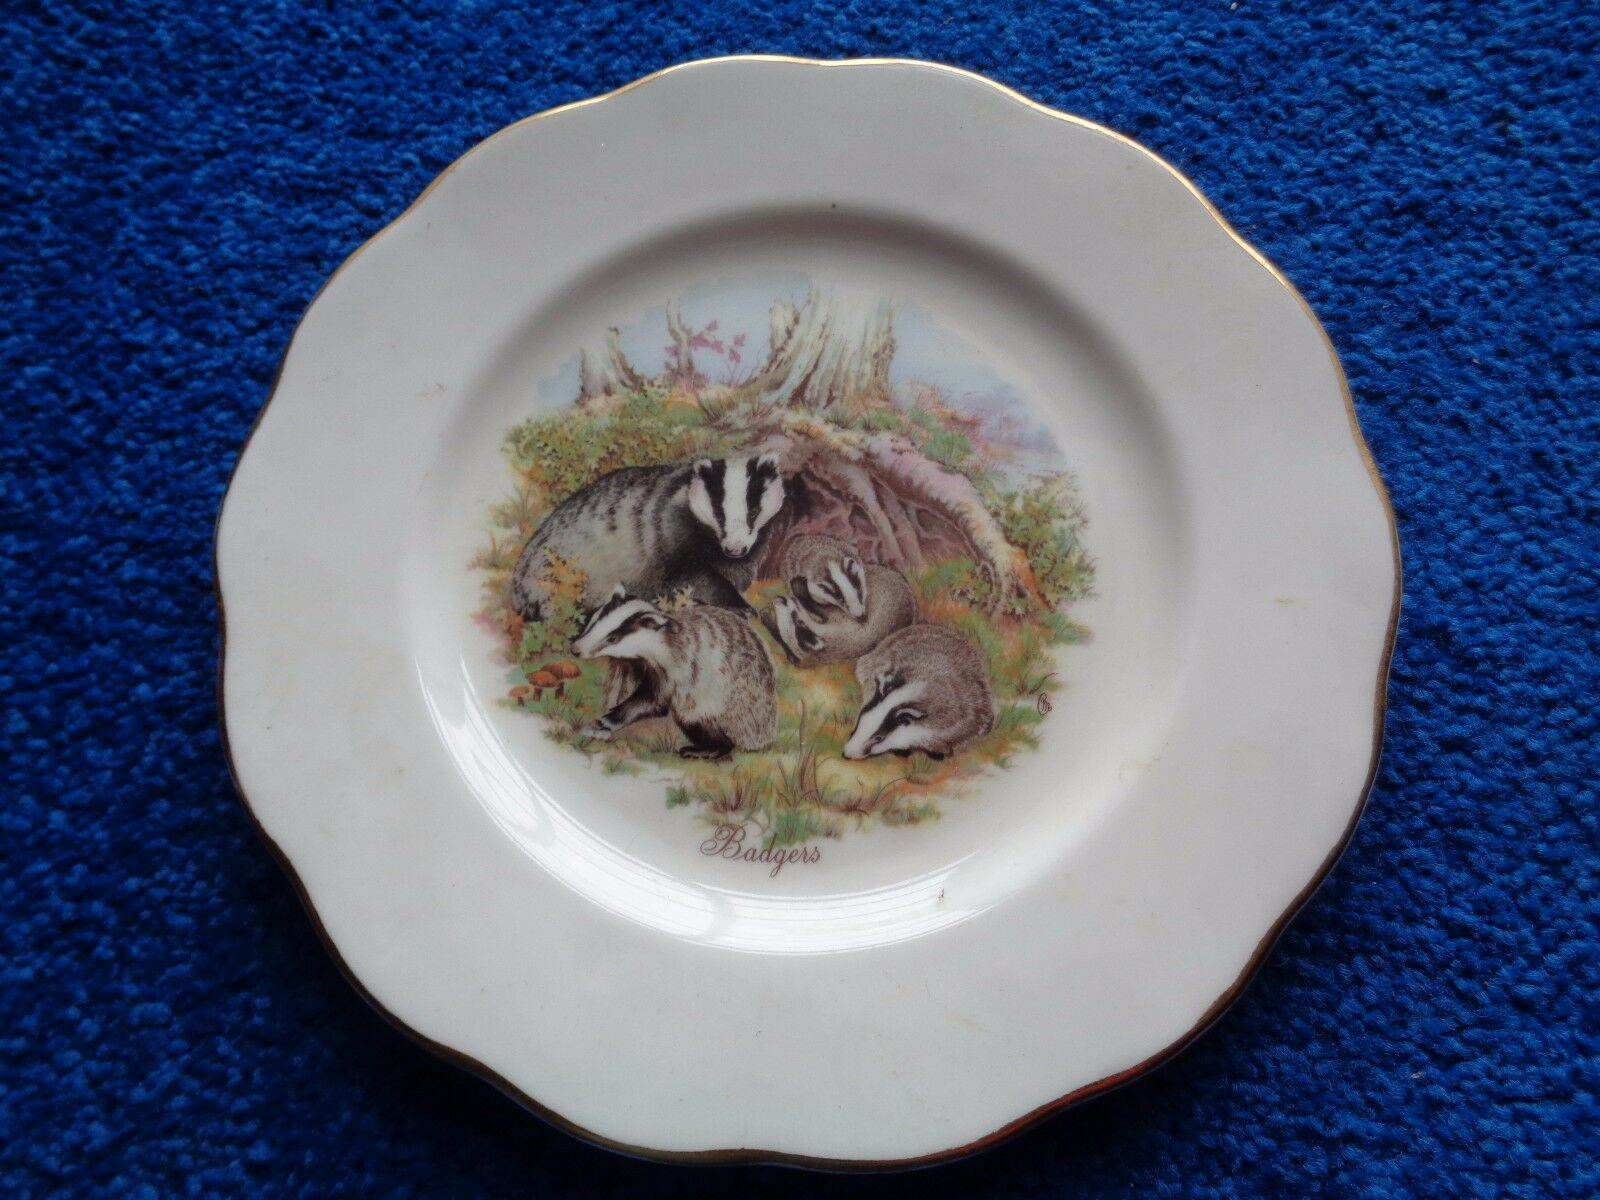 Bone China Badgers Plate